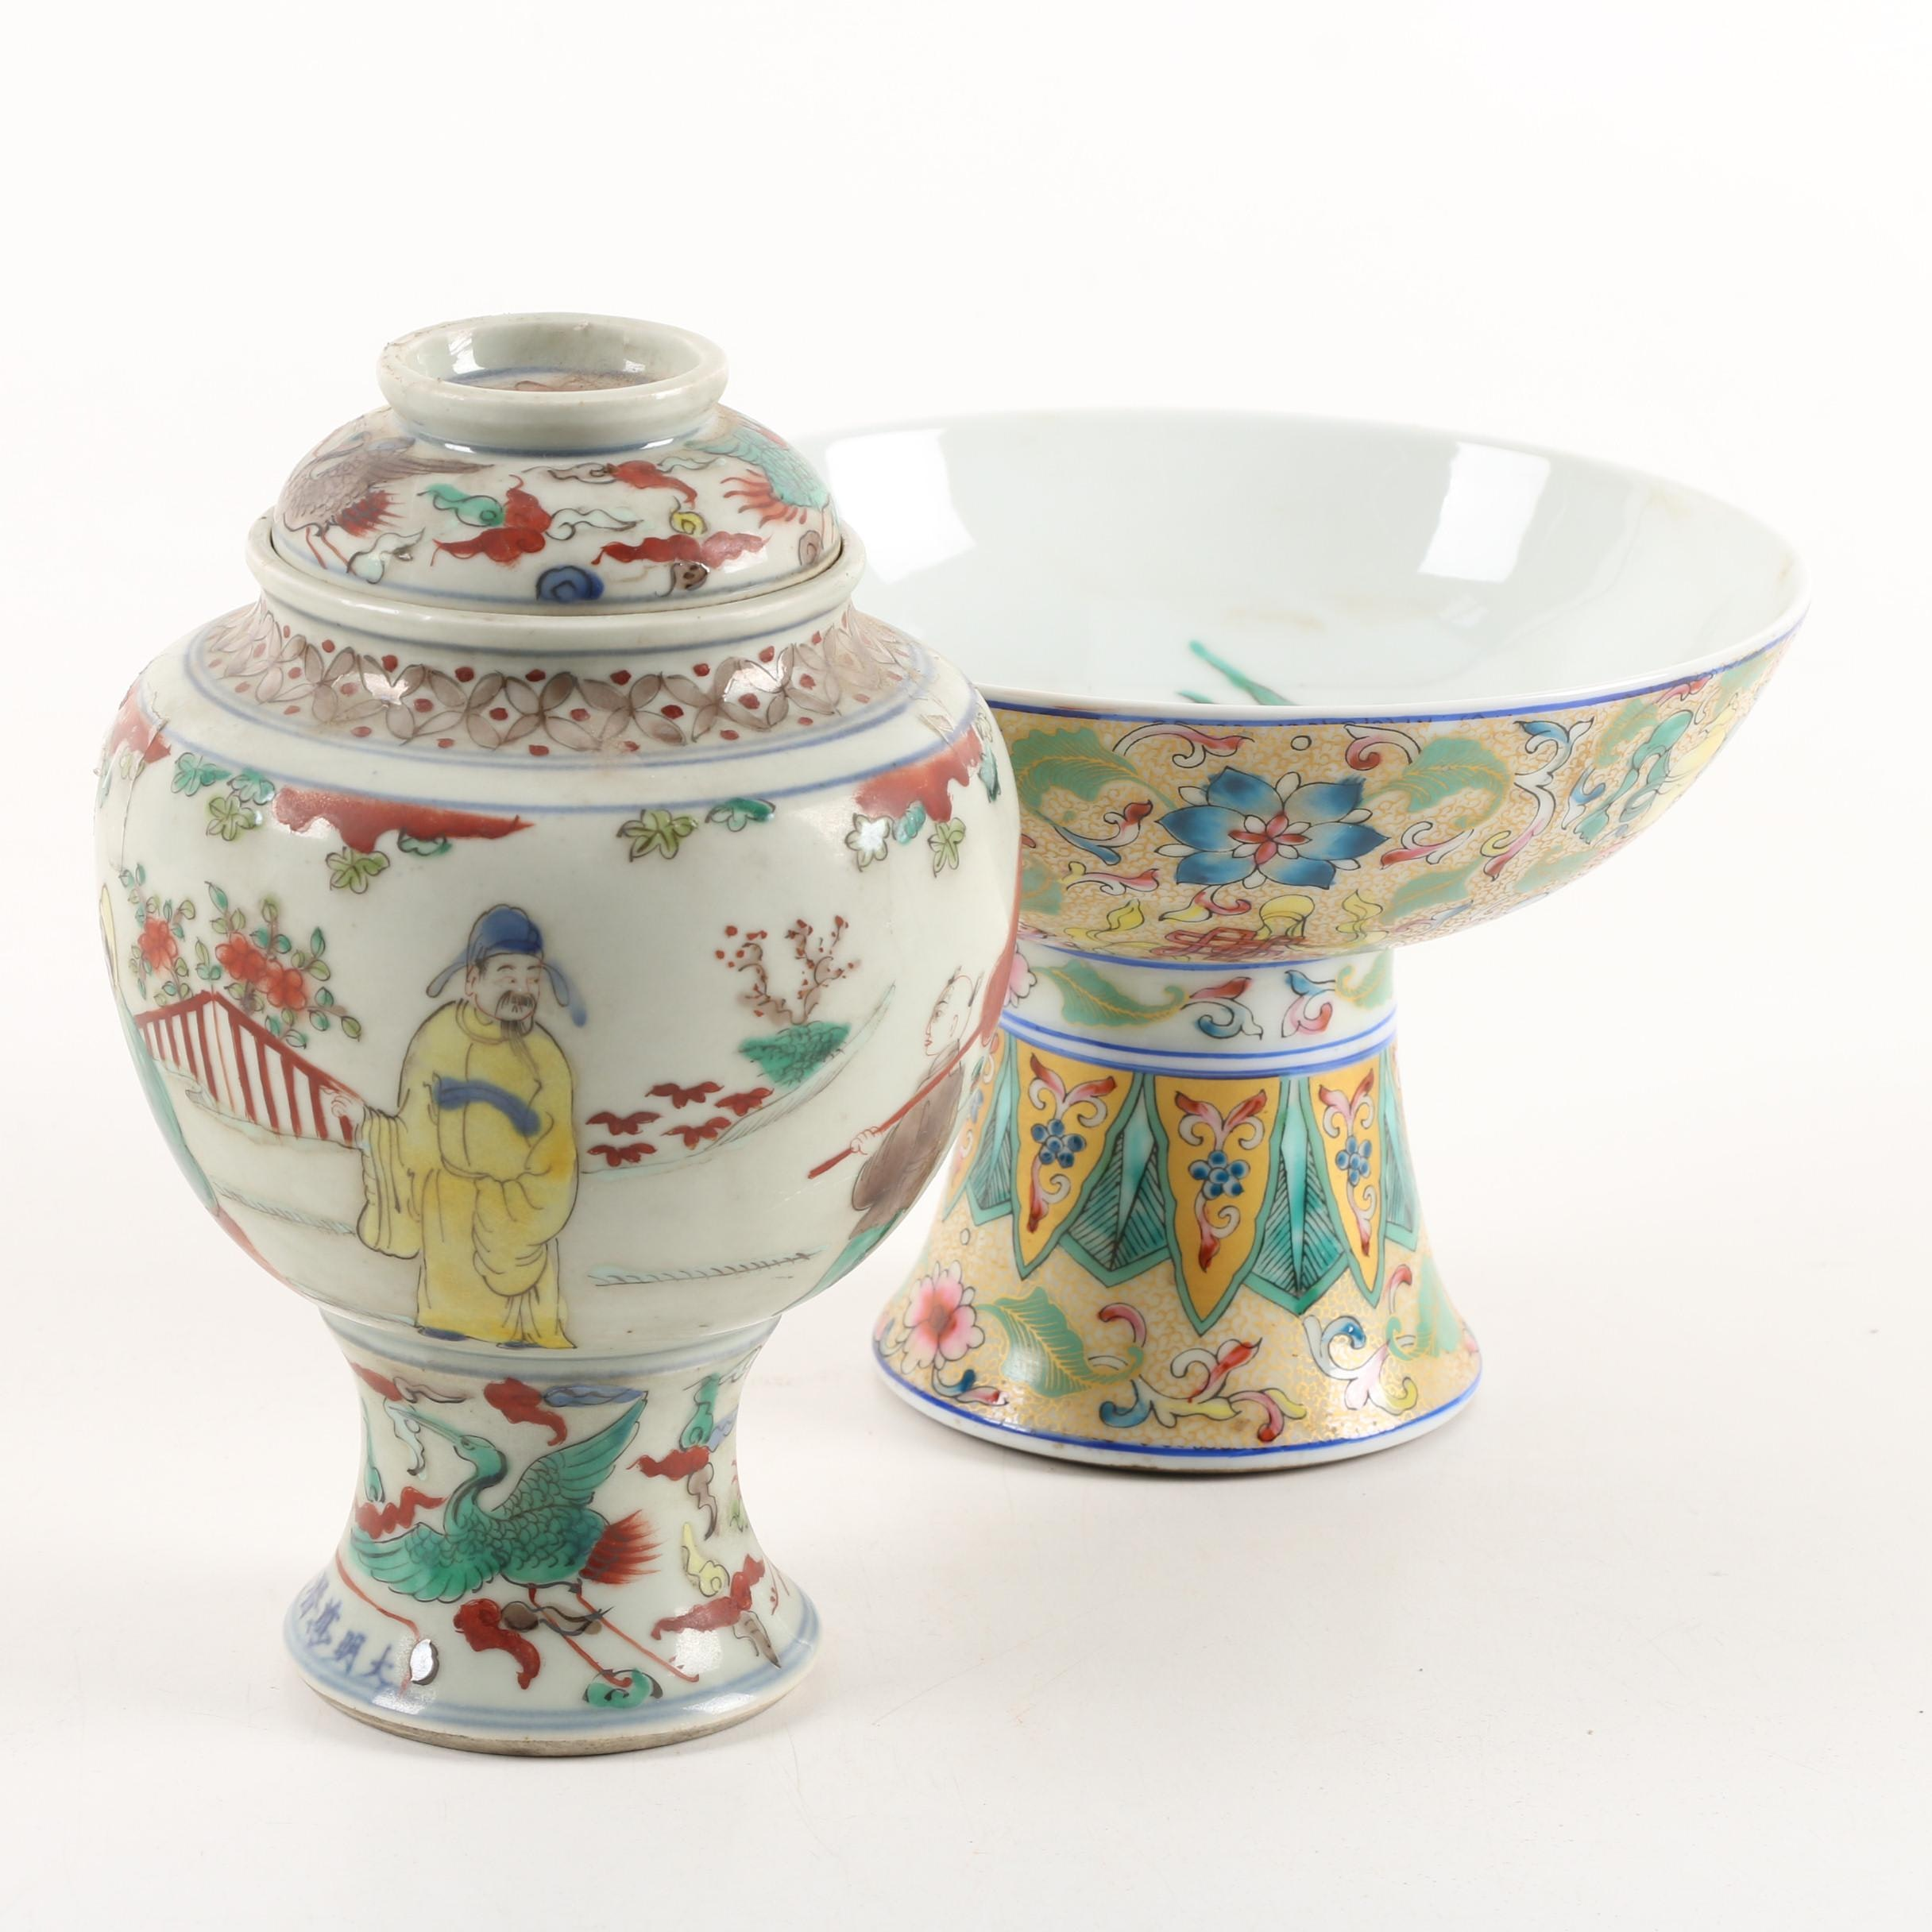 Chinese Porcelain Lidded Urn and Compote